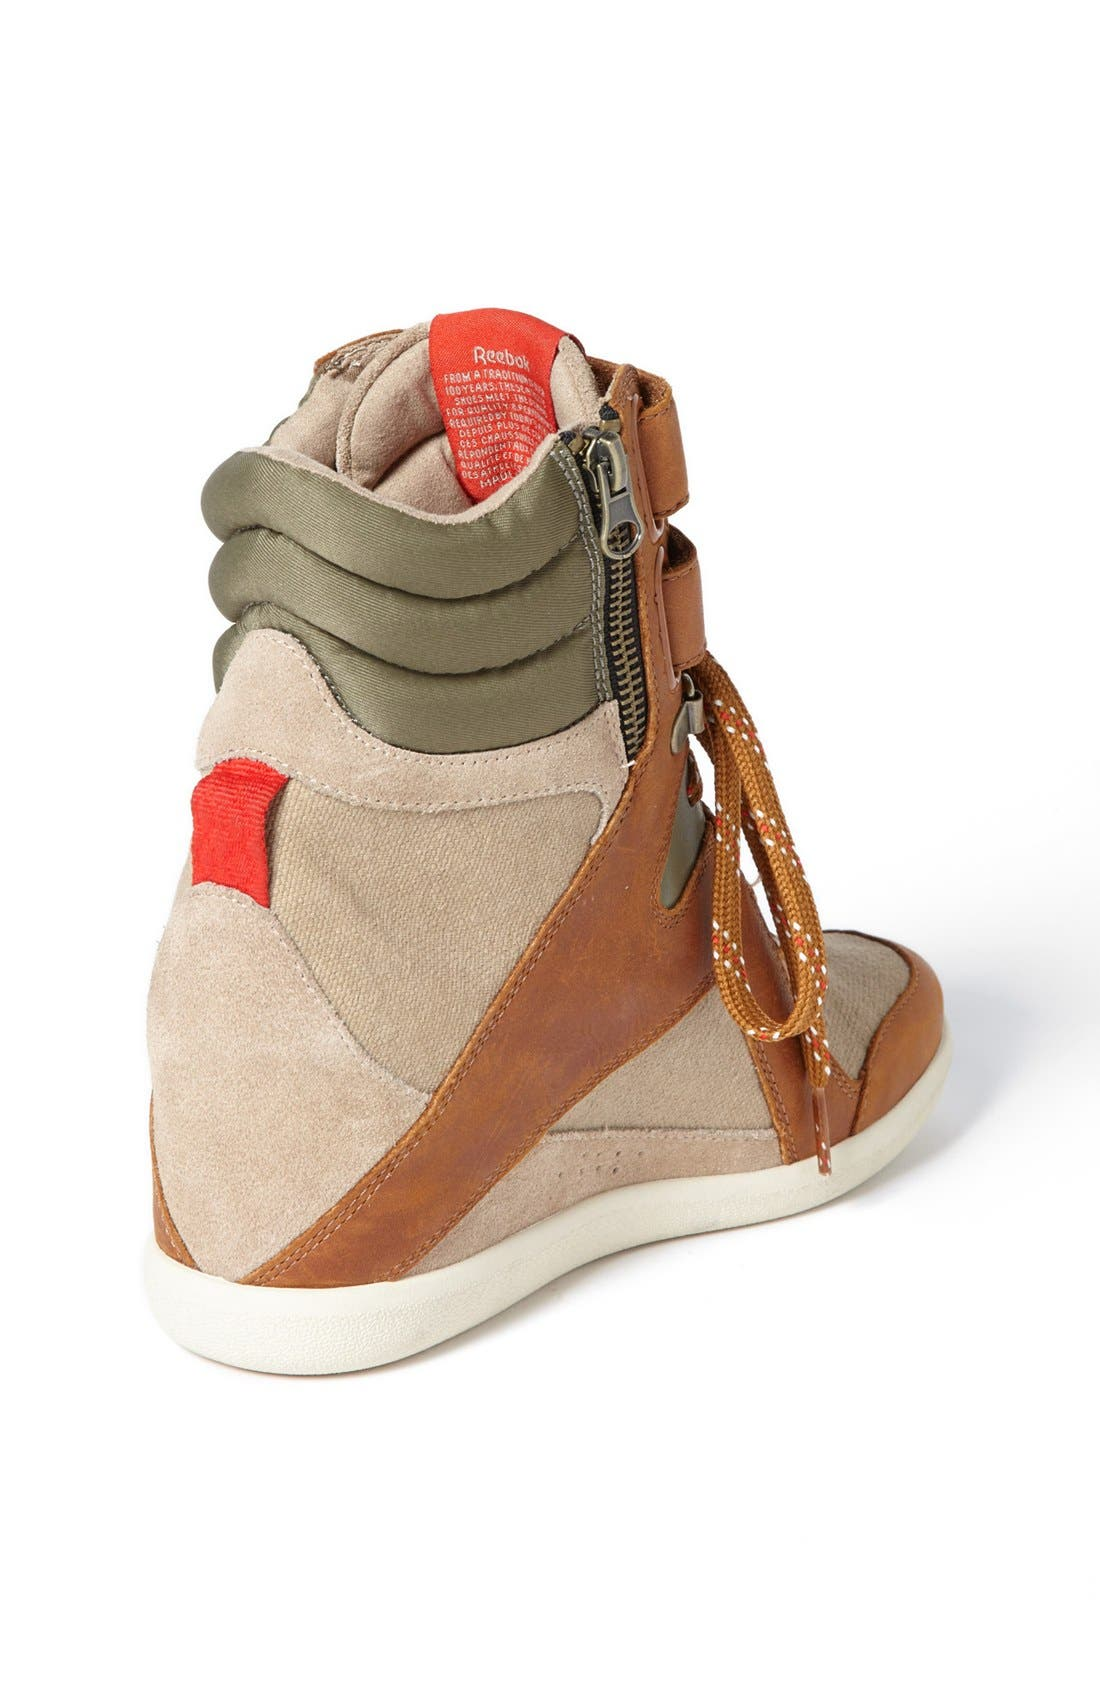 'Wedge A. Keys' Sneaker,                             Alternate thumbnail 2, color,                             Canvas/ Brown/ Green/ Red